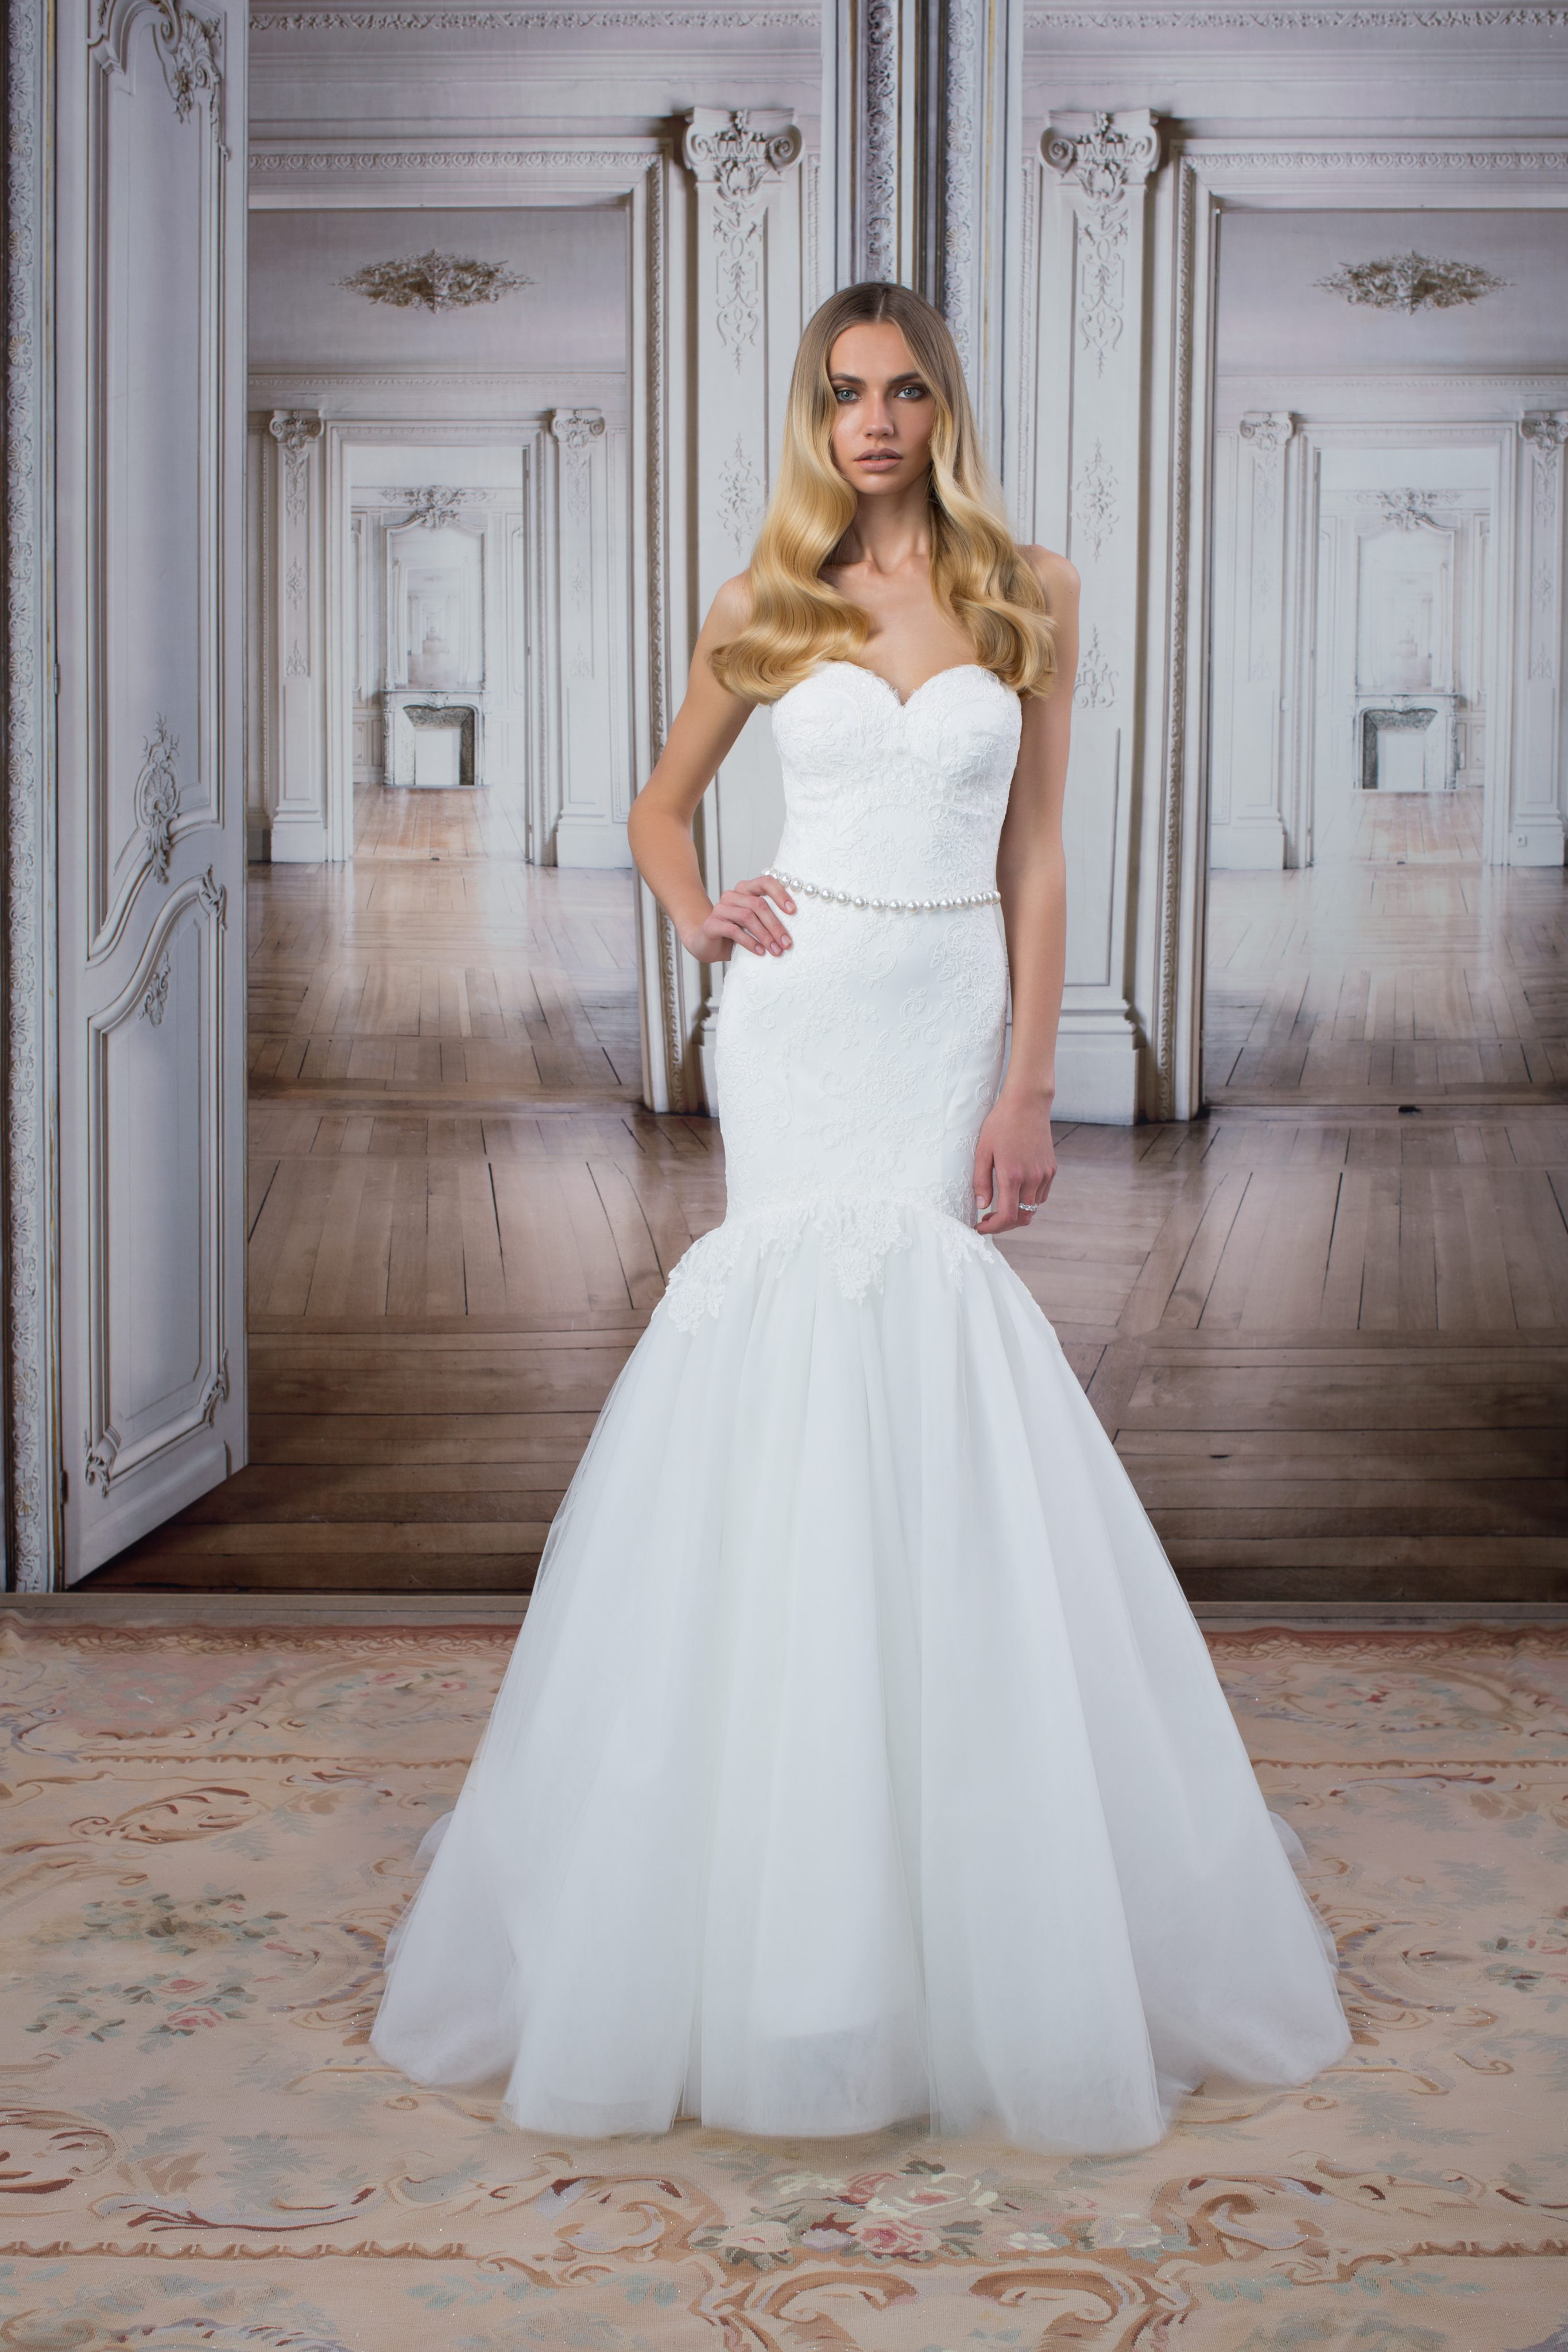 Modern Fit And Flare Wedding Dress | Kleinfeld Bridal